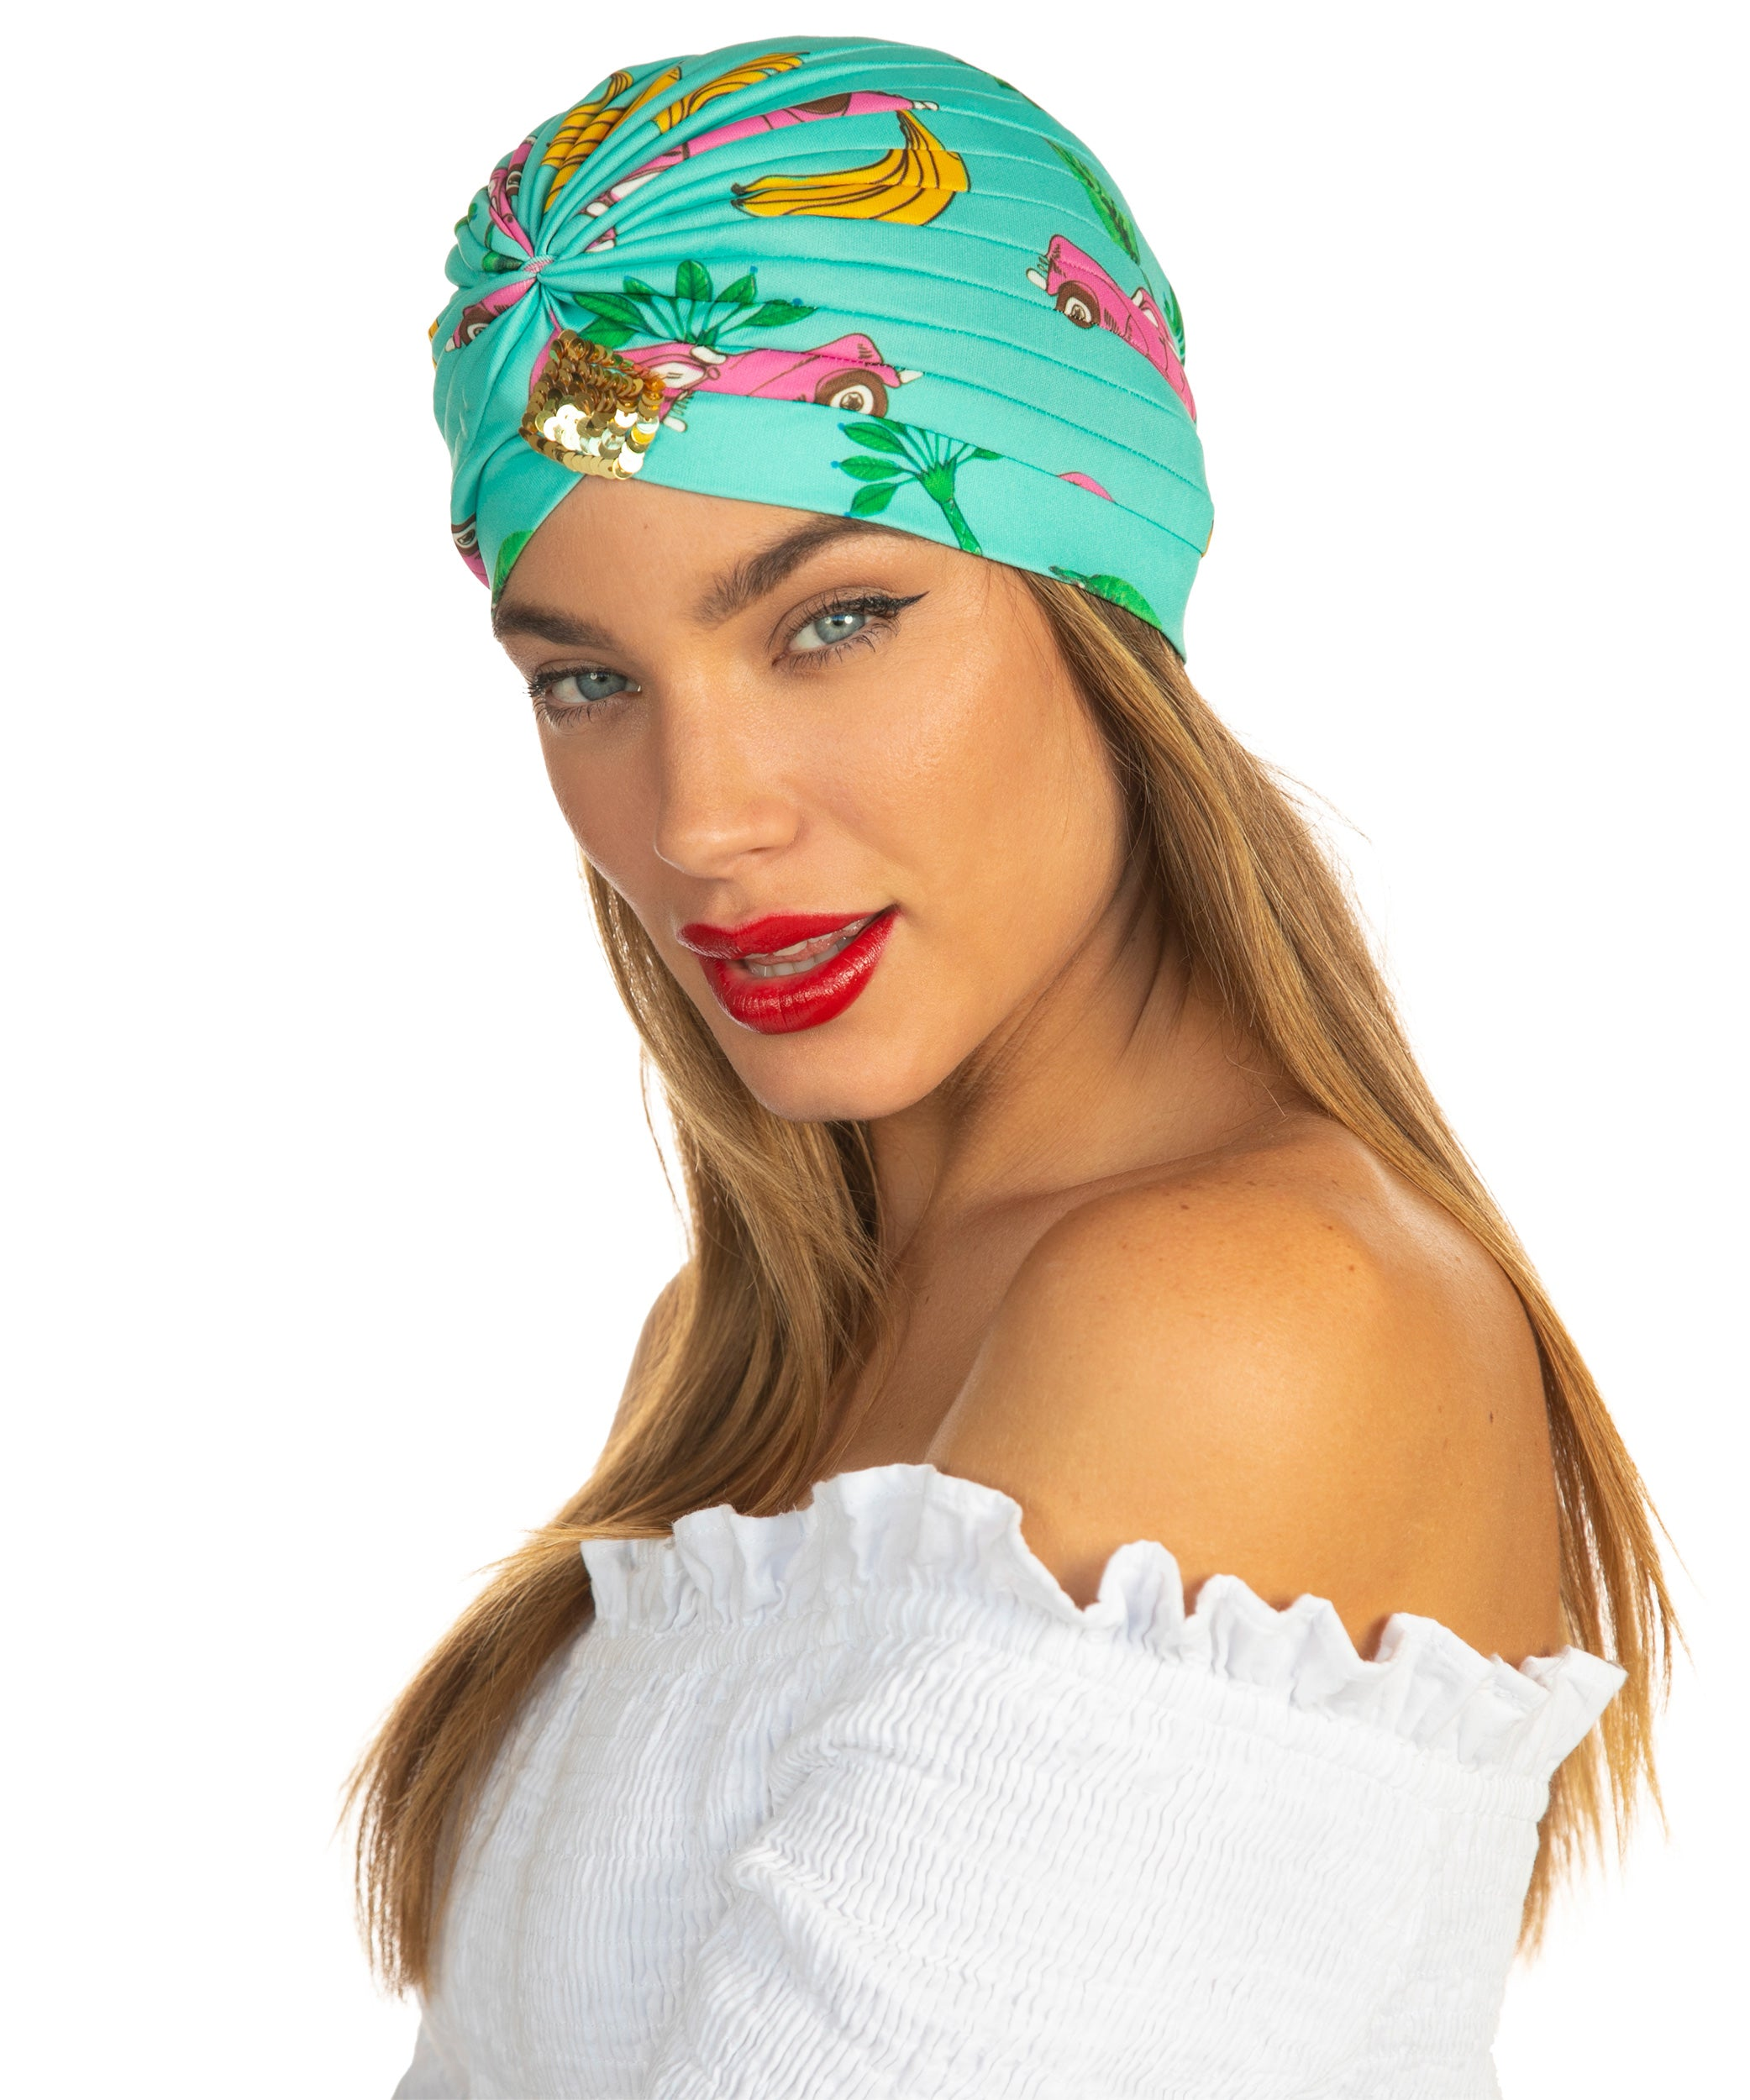 The Platano Turban